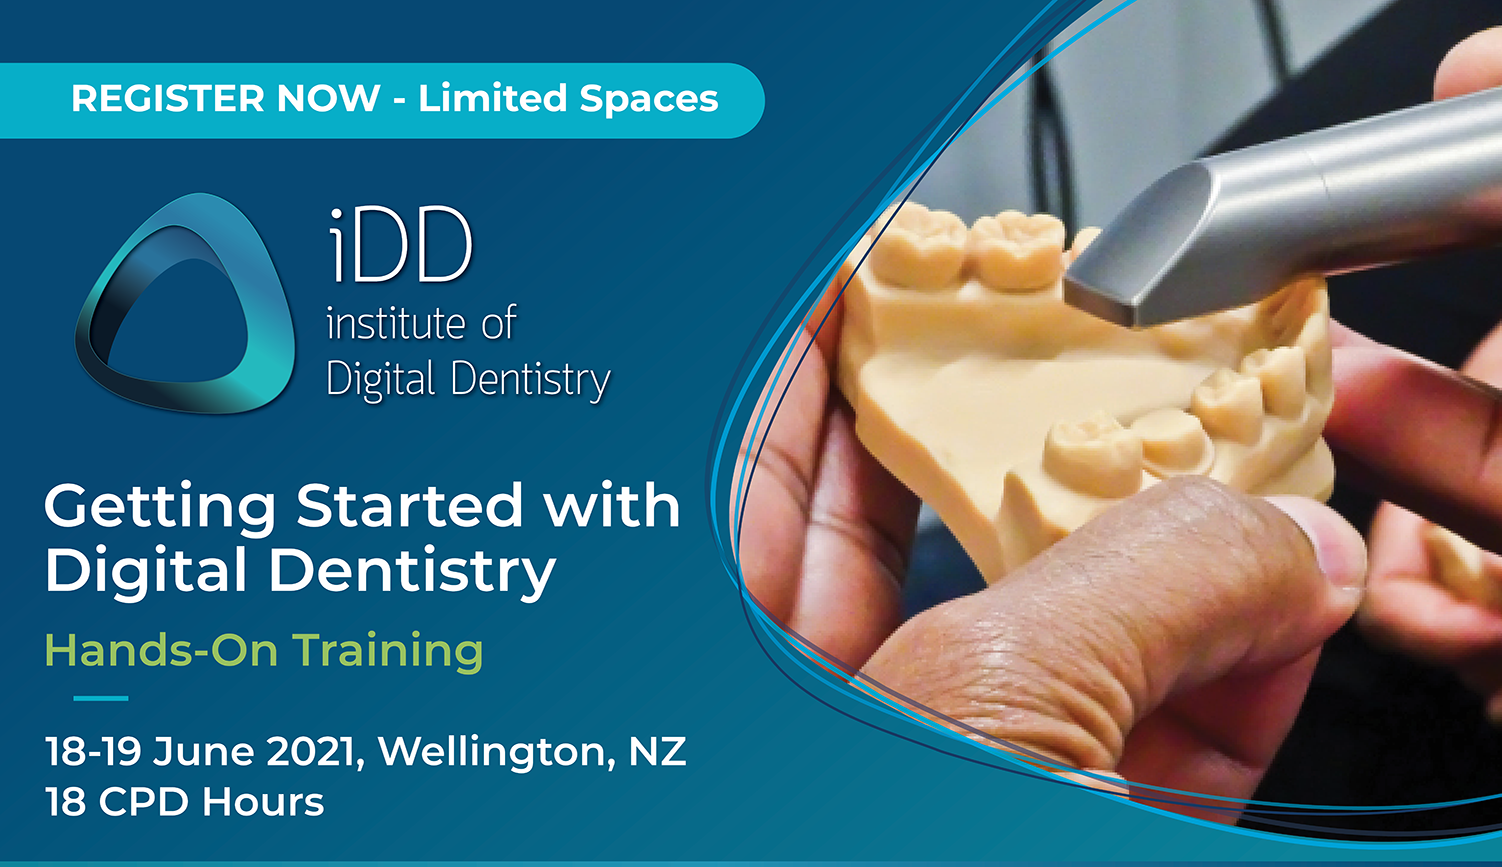 Getting Started with Digital Dentistry